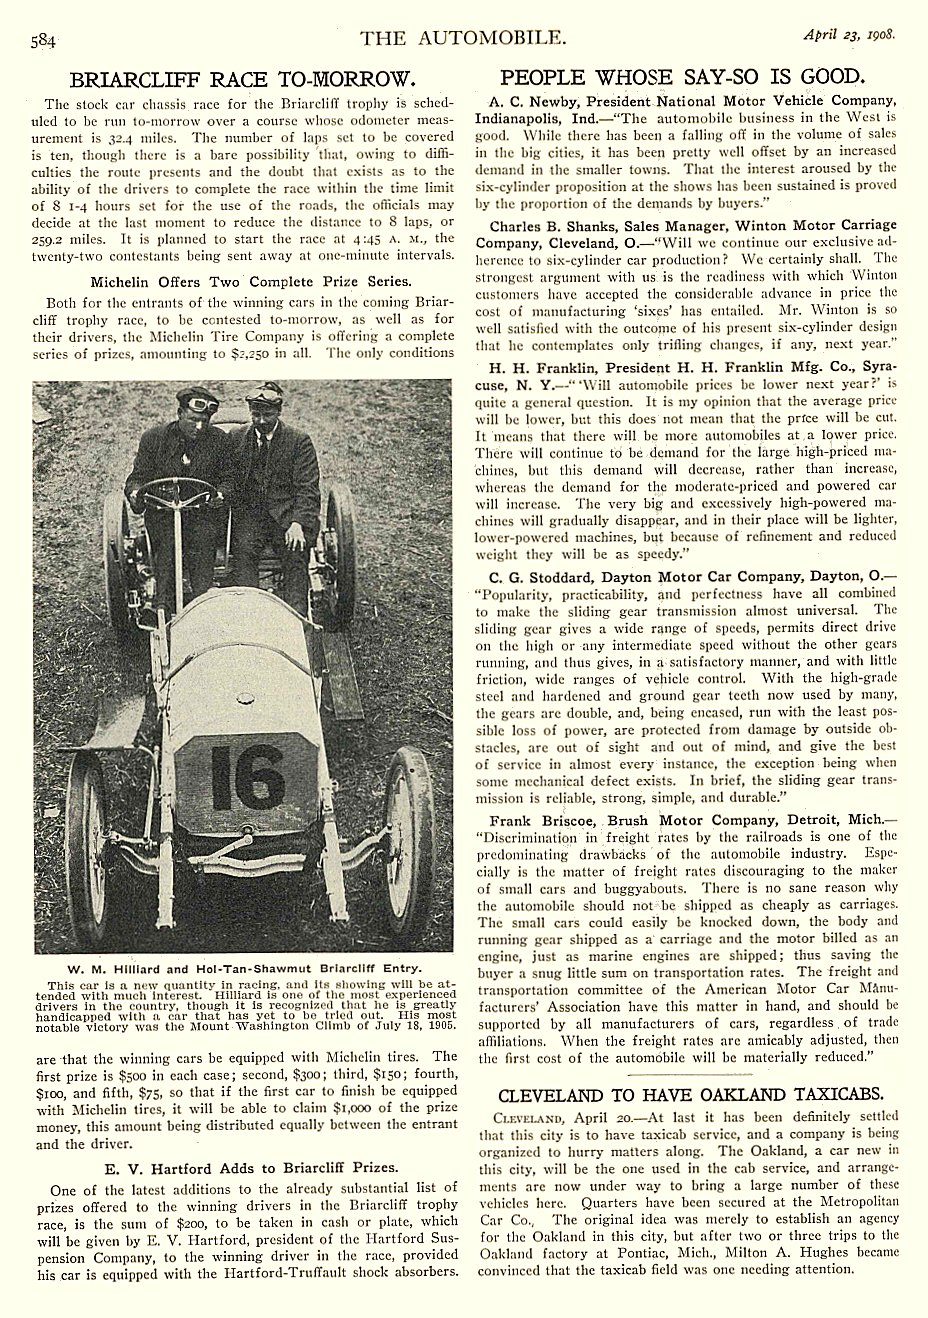 1908 4 23 NATIONAL Article PEOPLE WHOSE SAY-SO IS GOOD A.C. Newby, President National Motor Vehicle Company, Indianapolis, IND THE AUTOMOBILE April 23, 1908 University of Minnesota Library 8.25″x11.75″ page 584